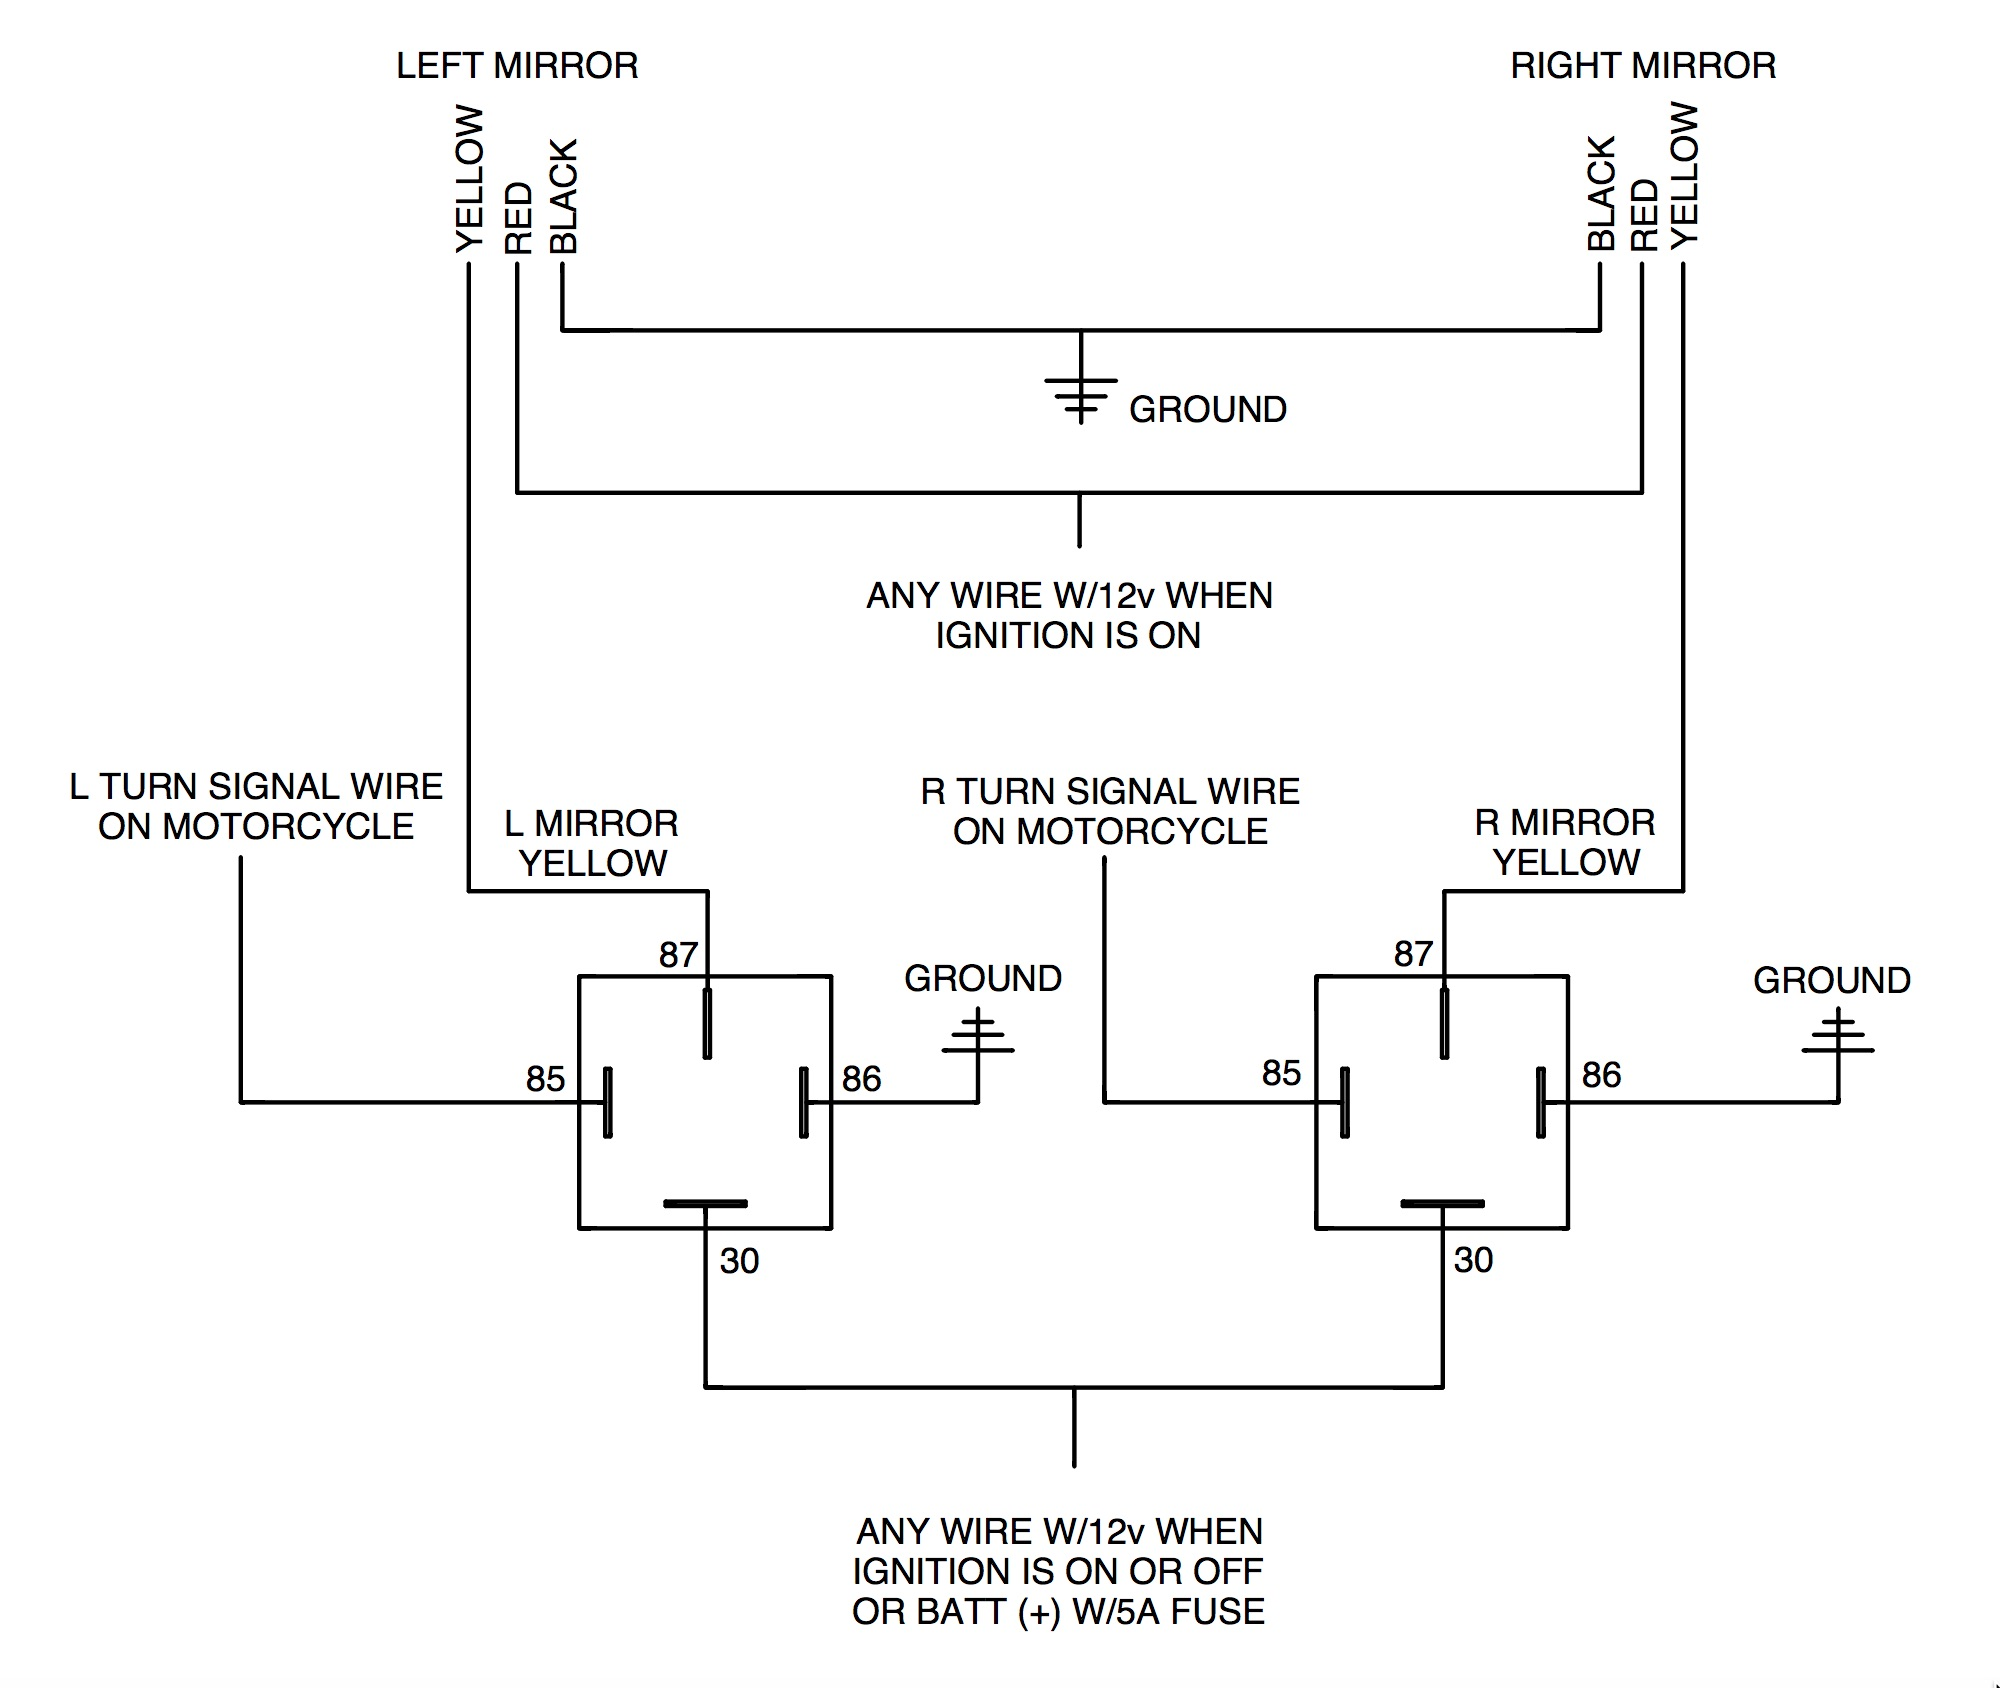 Rivco dual relay diagram adding rivco led mirrors to a victory cross country motorcycle Basic Turn Signal Wiring Diagram at n-0.co